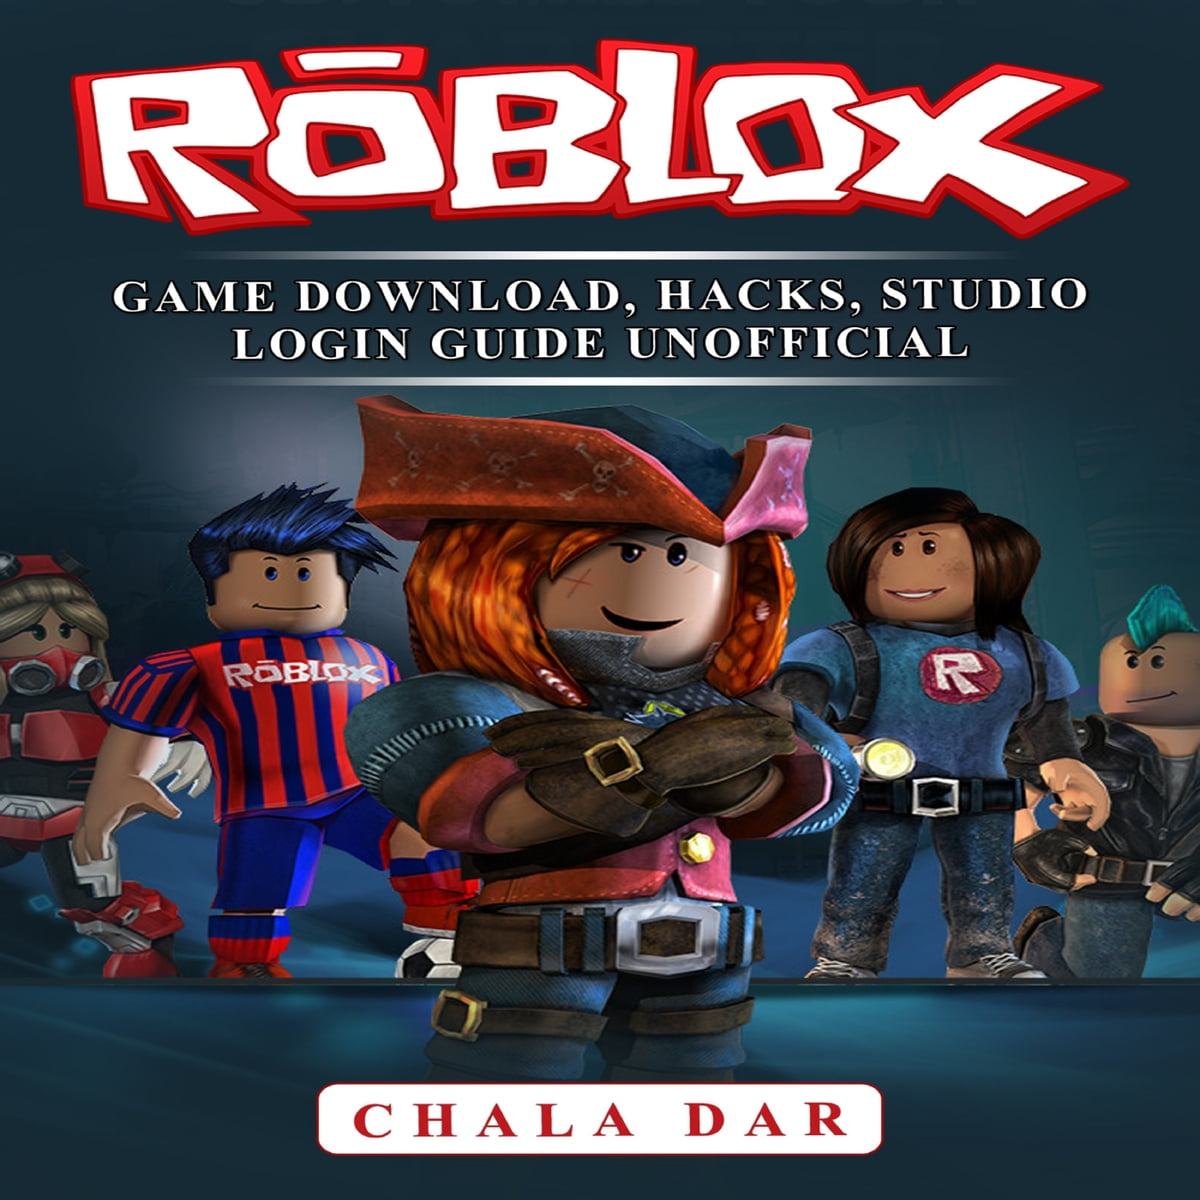 Roblox Game Download Hacks Studio Login Guide Unofficial